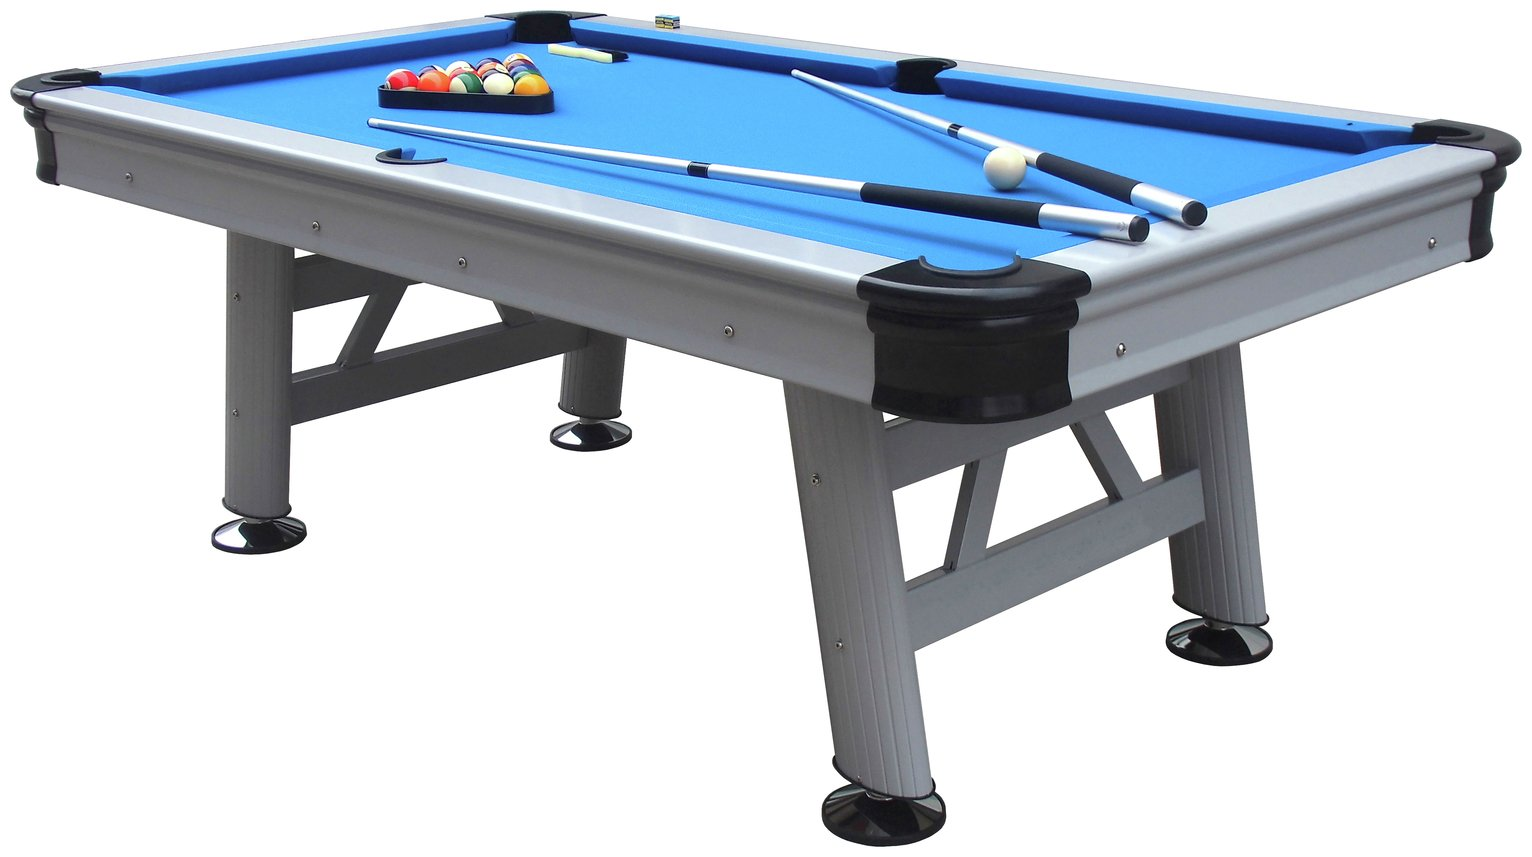 Image of Mightymast 7ft Astral Outdoor Pool Table